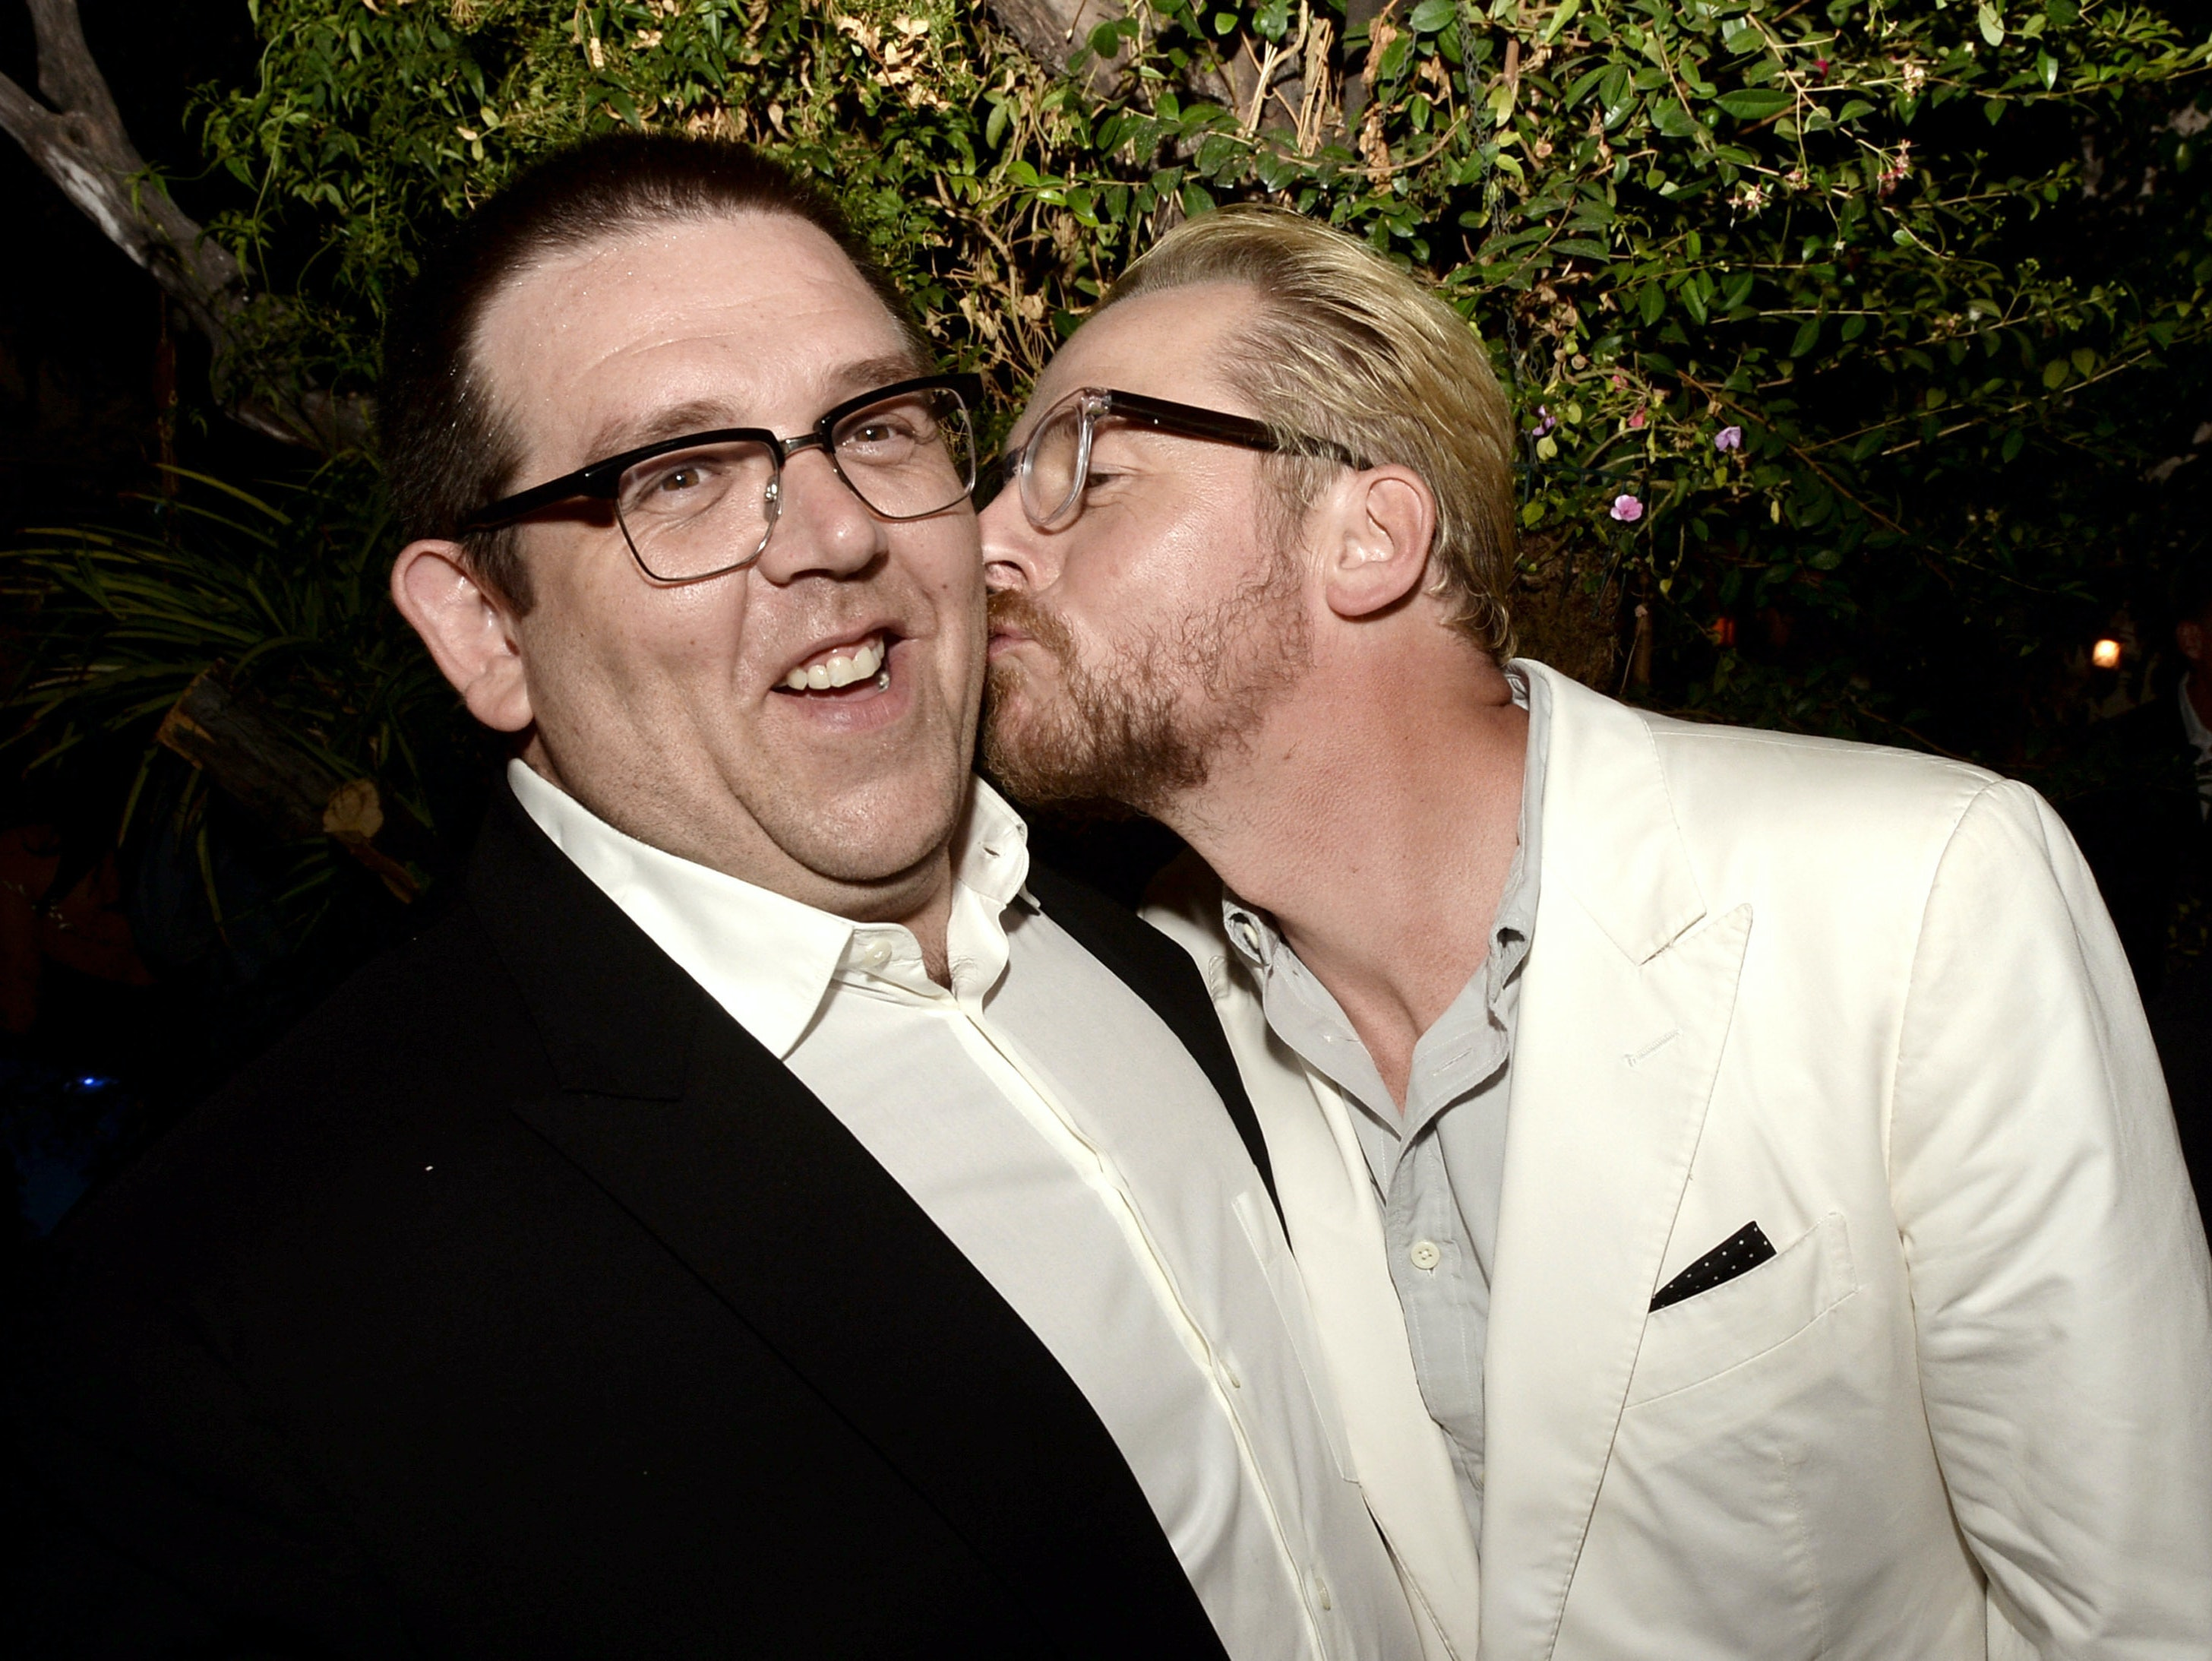 Simon Pegg and Nick Frost Are Writing a New Project Together